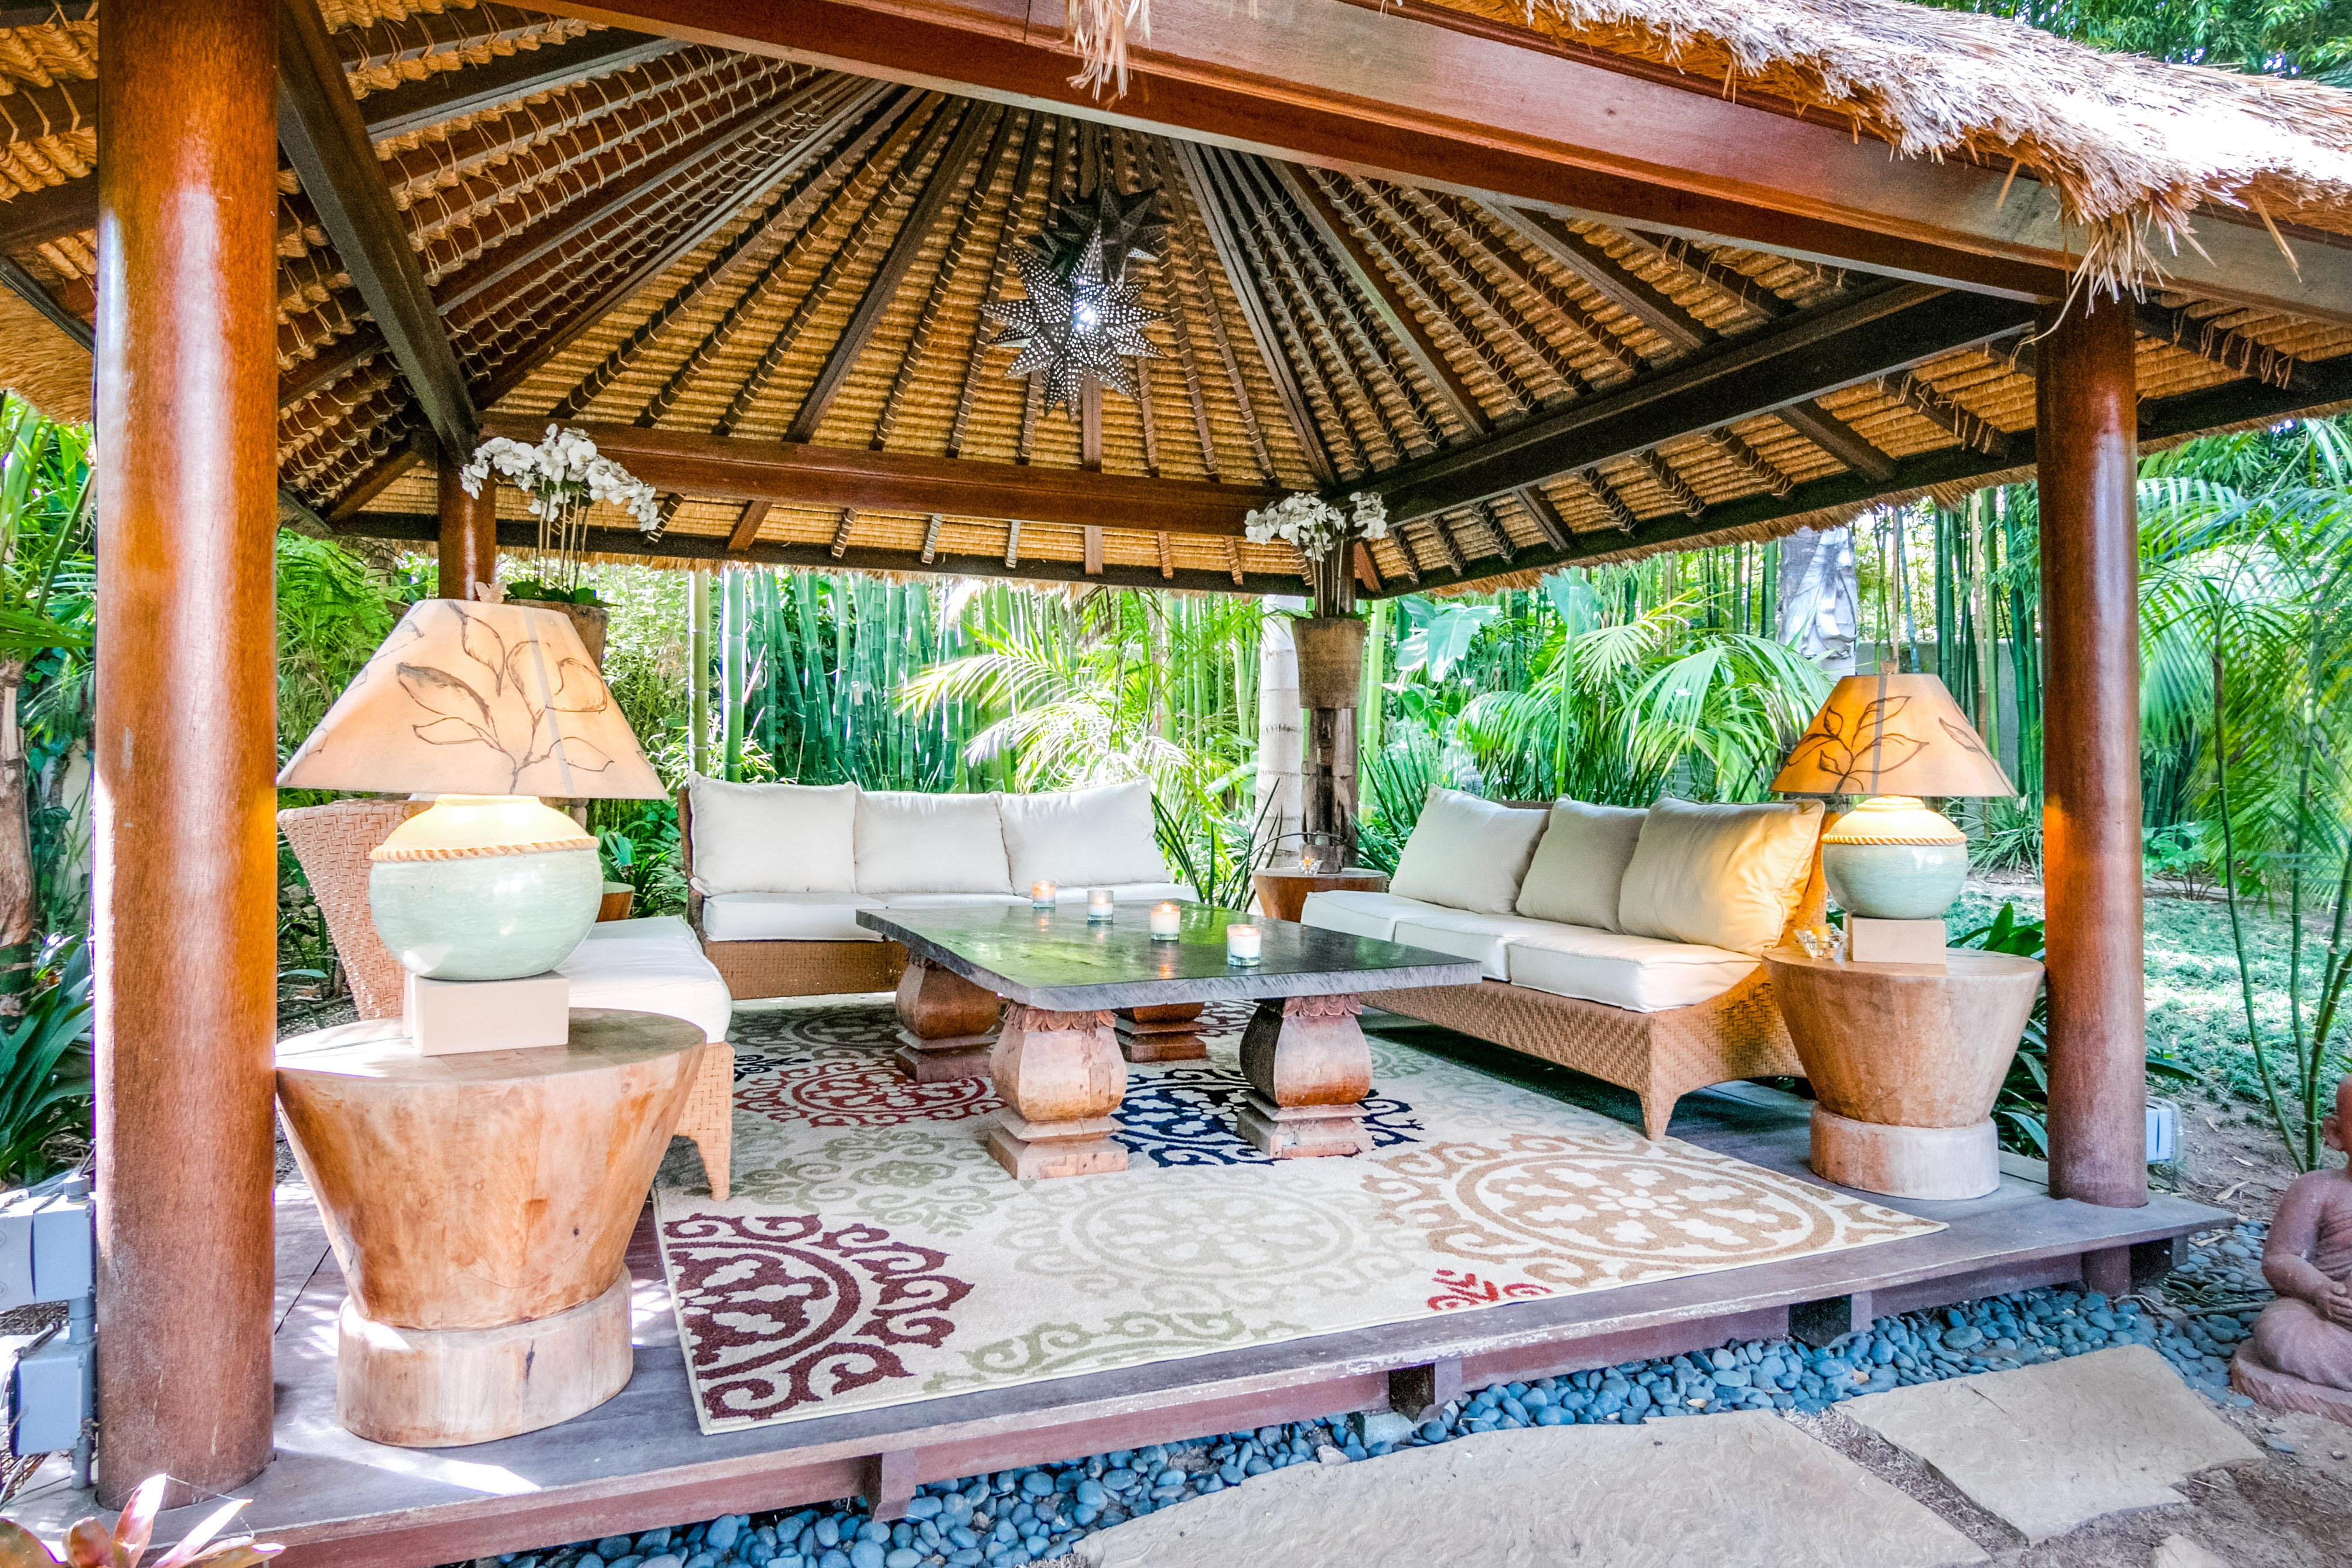 Get cozy in the outdoor living room, sheltered under a thatched-roof cabana.